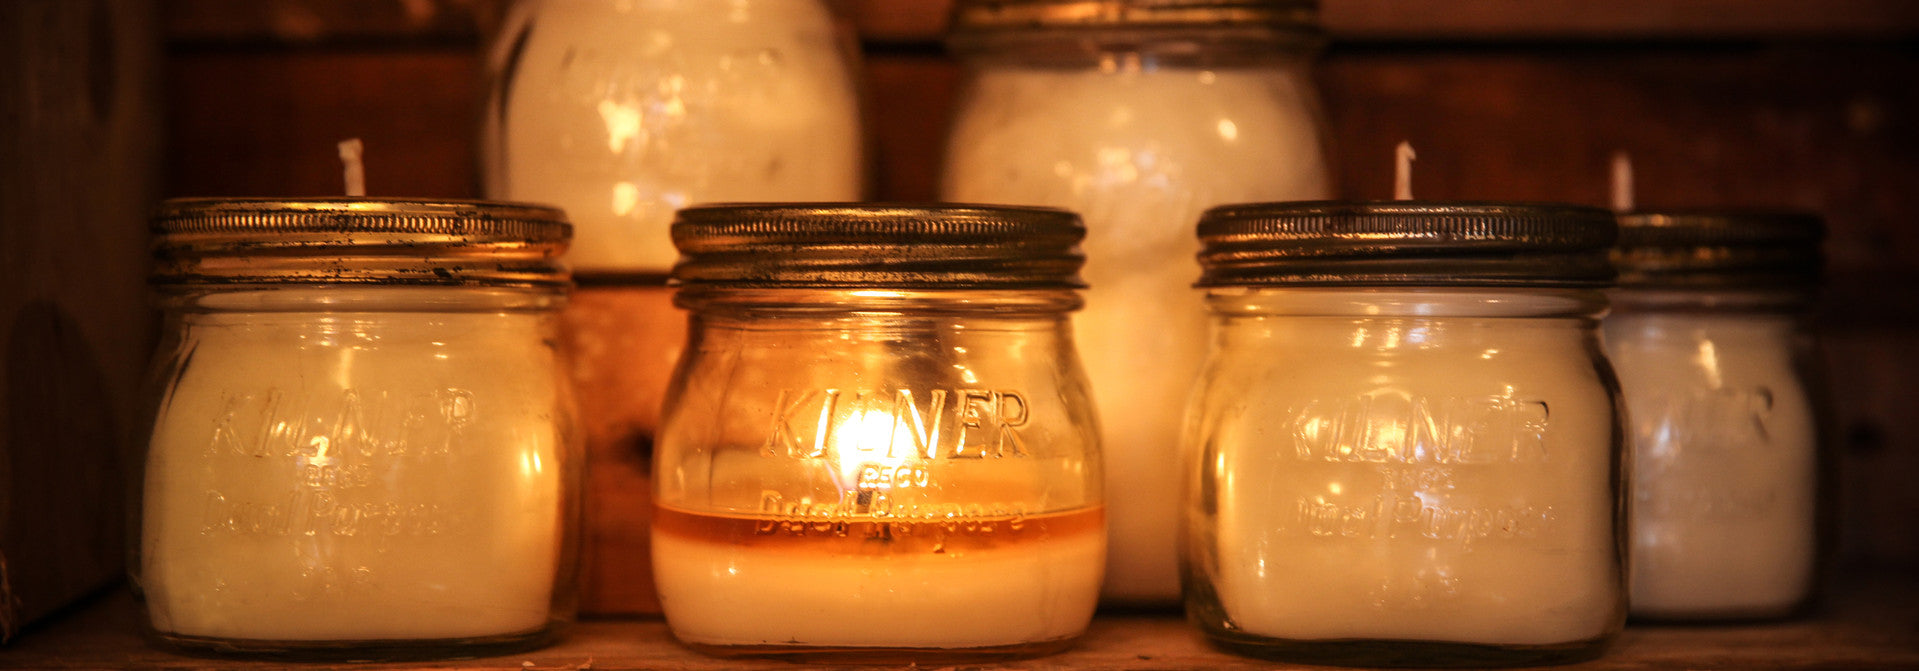 handmade candles soya wax vintage kilner jar fragrant scented candle